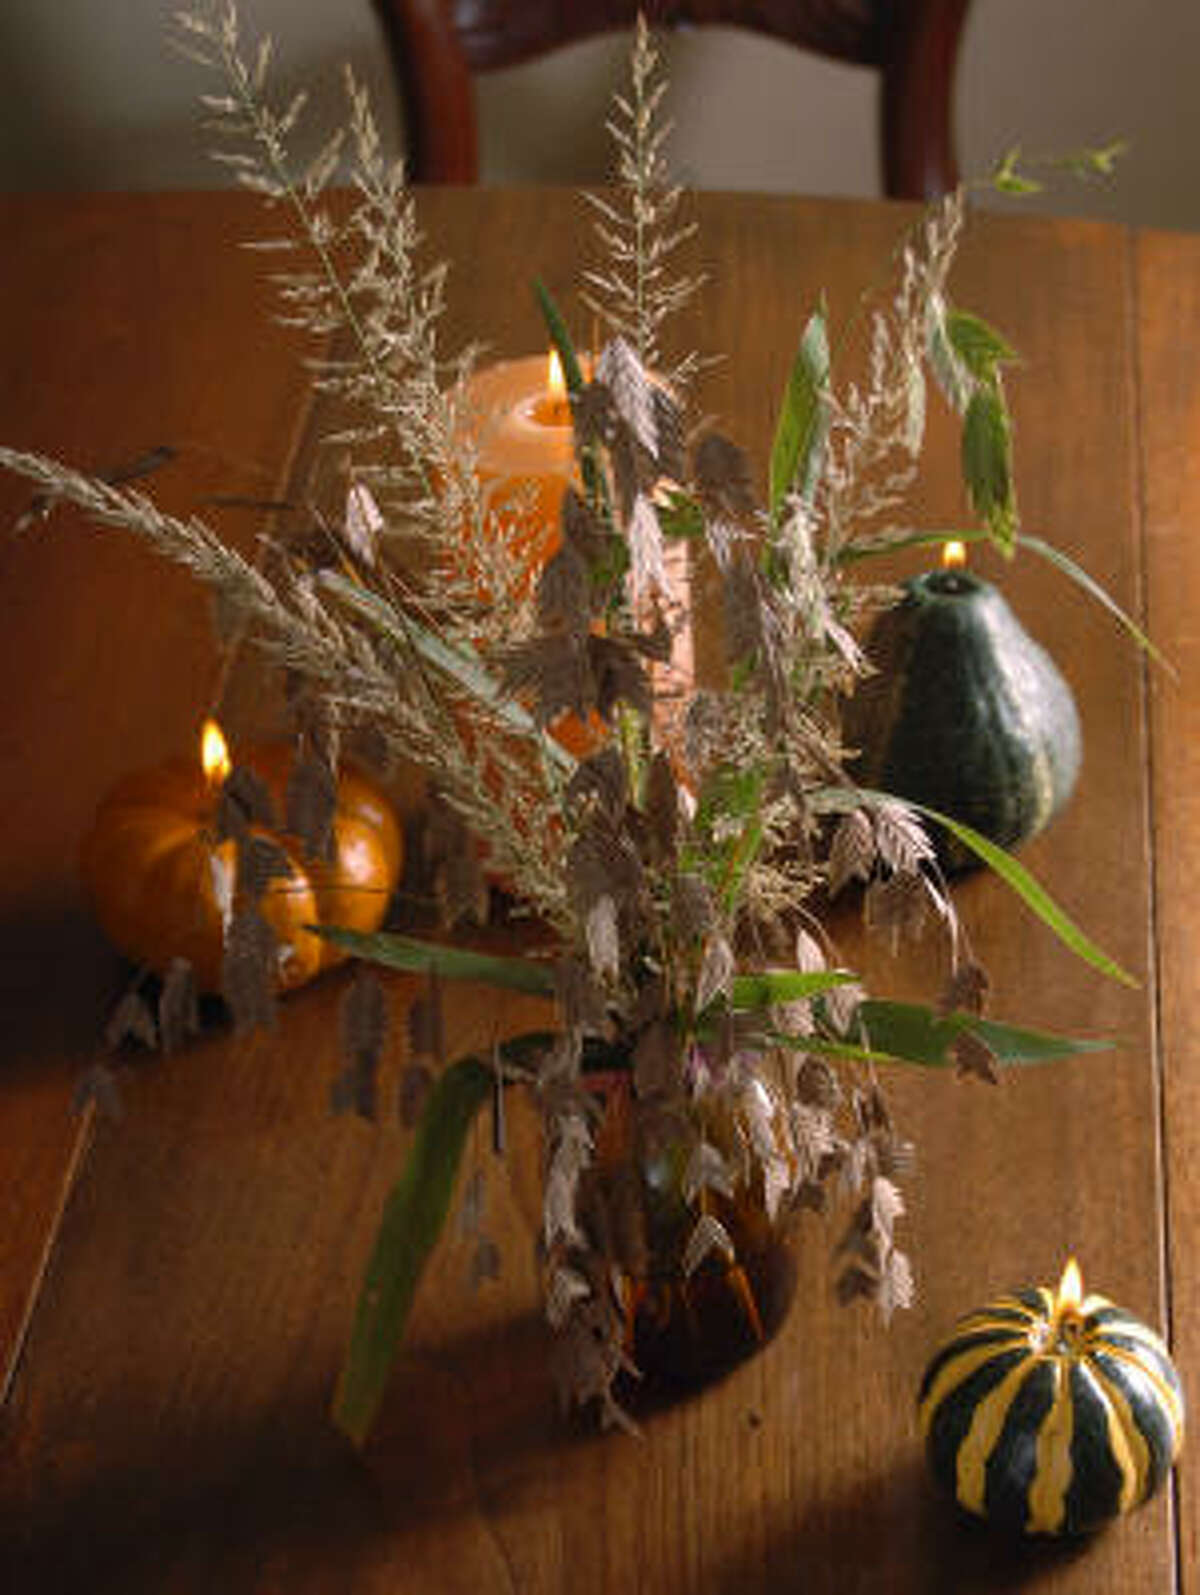 An arrangement of sea oats This tablescape | Holiday topiaries | Moss wreath | Other people's wreaths :: HoustonGrows.com